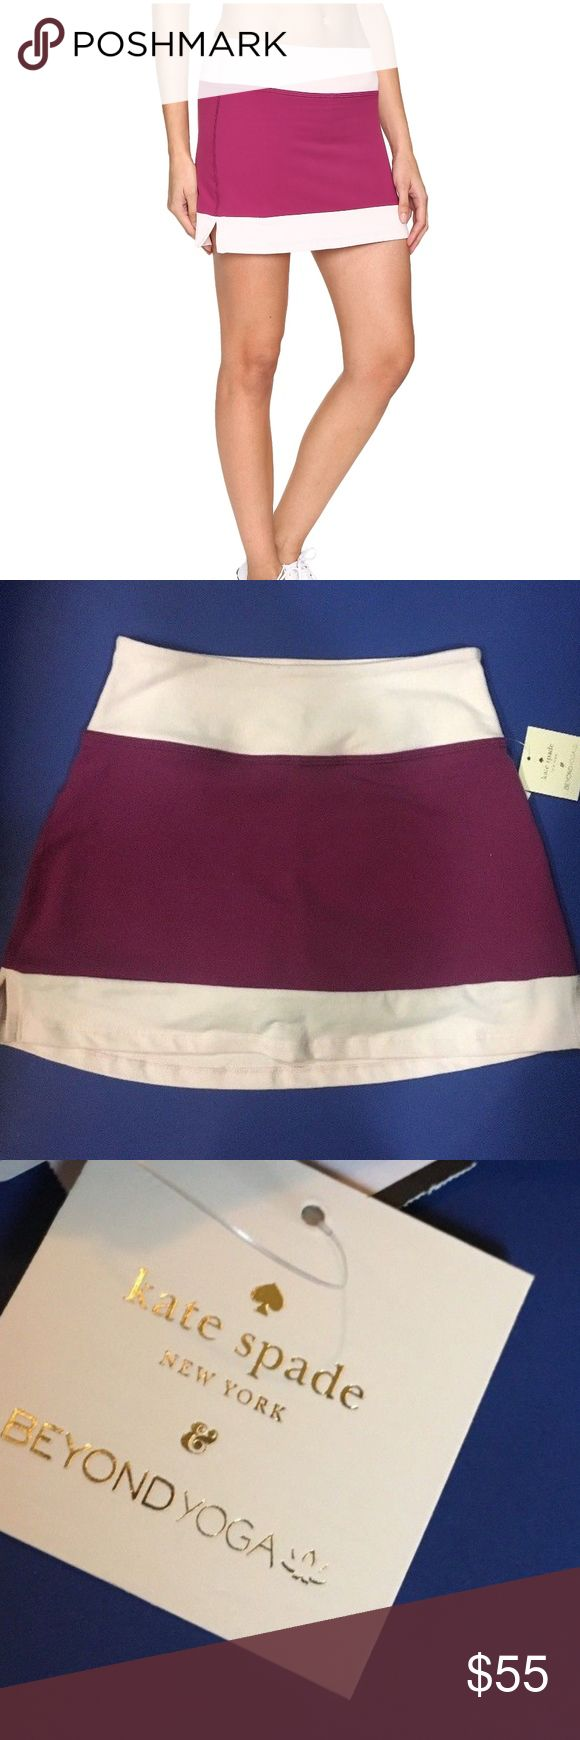 """kate spade x beyond yoga frame skirt 90% supplex, 10% lycra     fitted mini skirt with self under layer shorts     contrast self fabric waistband and hem     side slits on skirt layer     3"""" signature waistband     signature gold heat transfer logo     ultra-soft     generous stretch and full recovery     4-way stretch     moisture wicking     the real photos reflect the true color  CHECK MY STORE FOR MATCHING SEPARATES FROM THIS LINE kate spade Skirts Mini"""